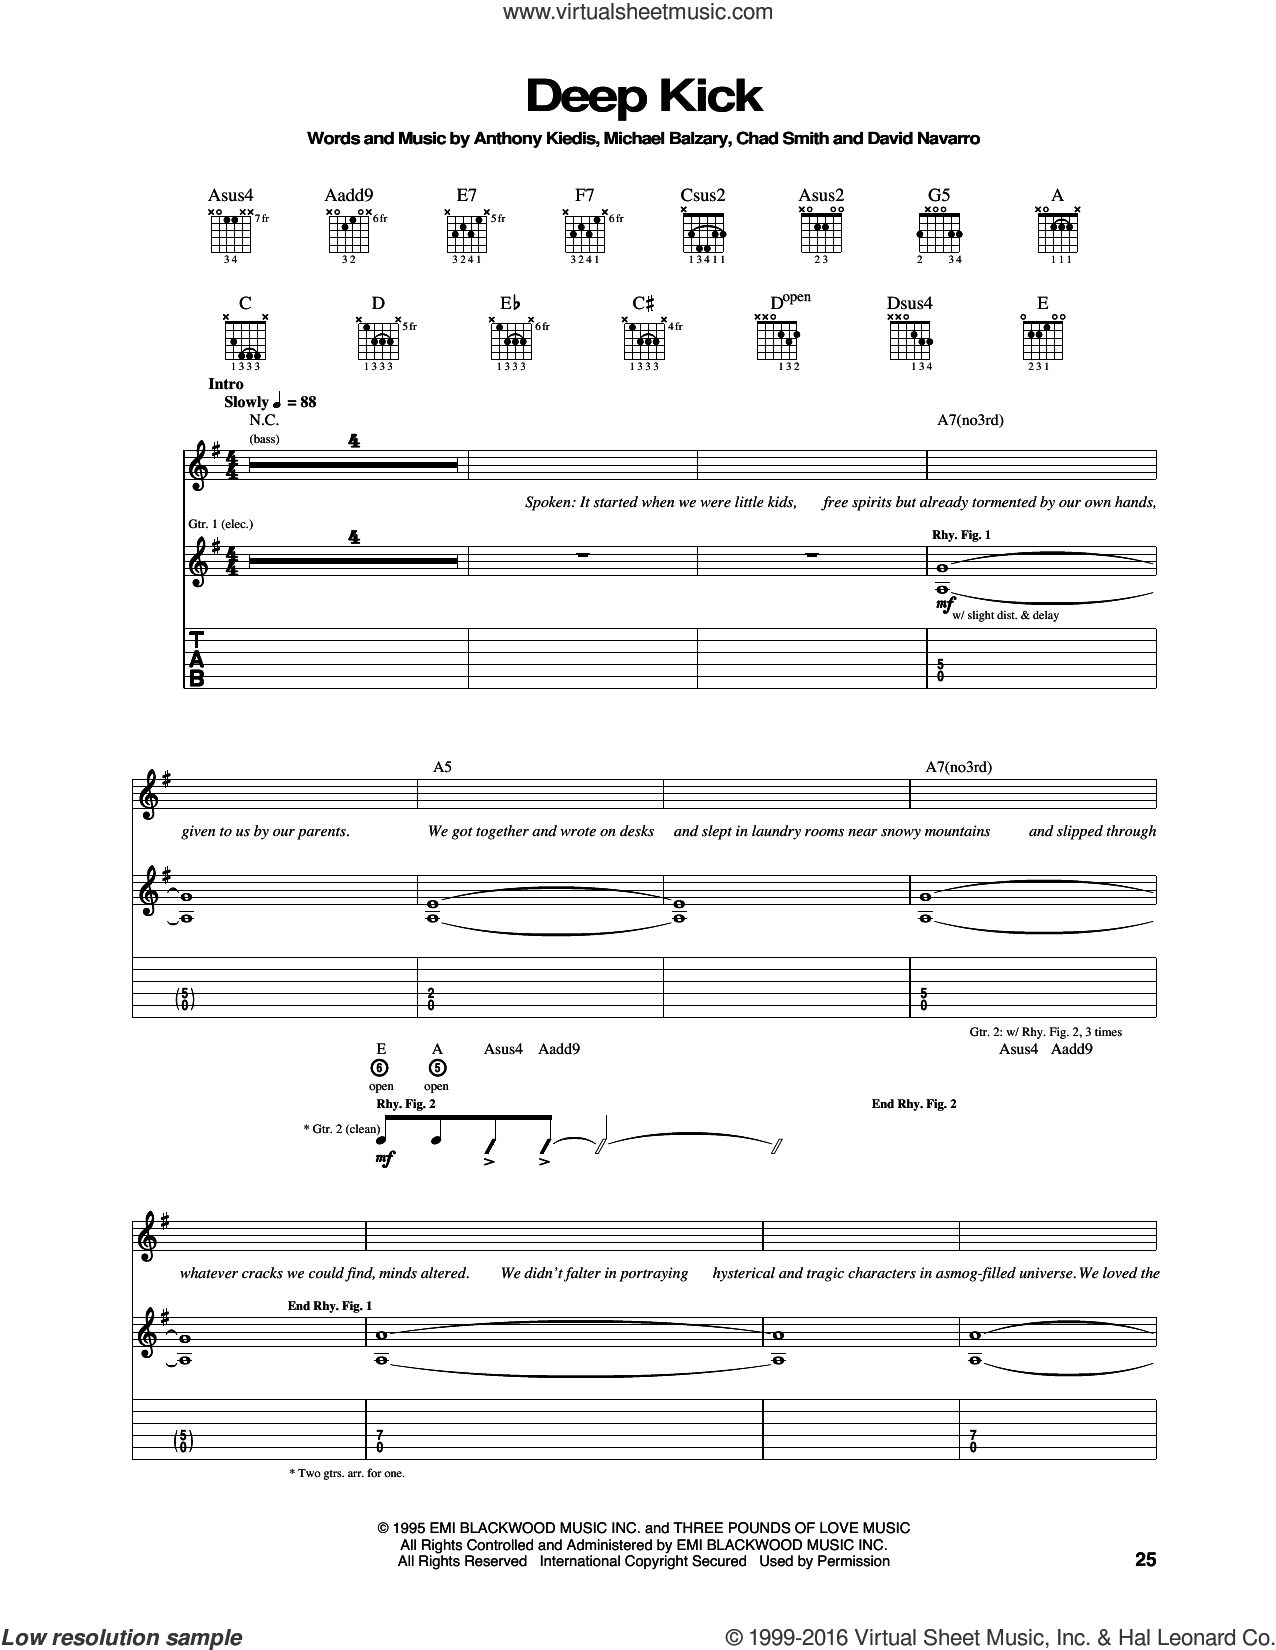 Deep Kick sheet music for guitar (tablature) by Red Hot Chili Peppers, Anthony Kiedis, Chad Smith, David Navarro and Flea, intermediate skill level